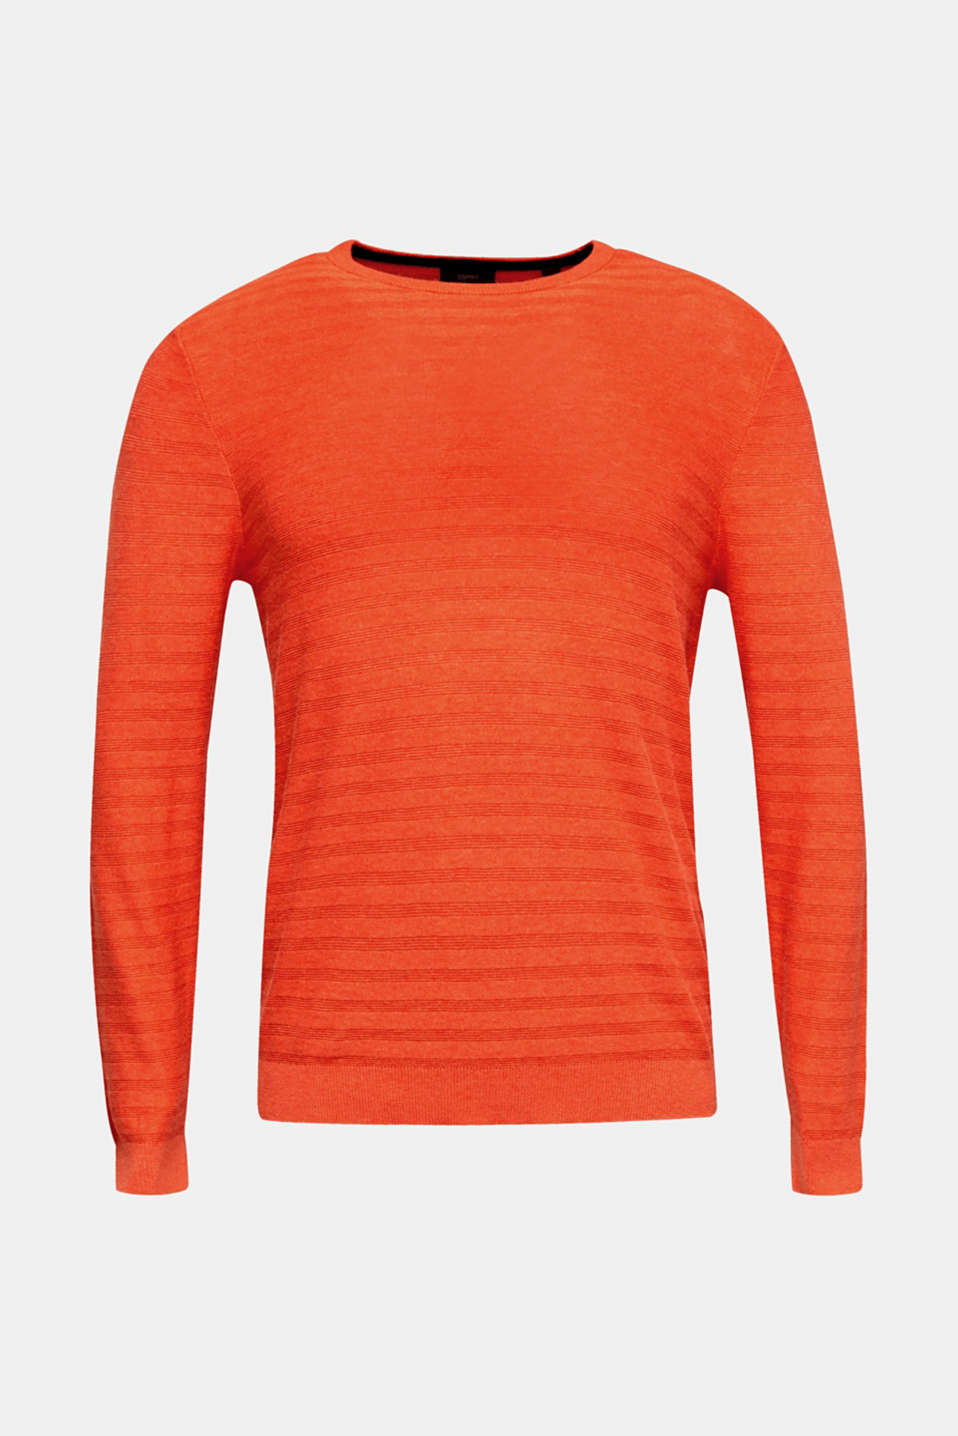 Blended silk: textured knit jumper, RUST ORANGE 5, detail image number 5